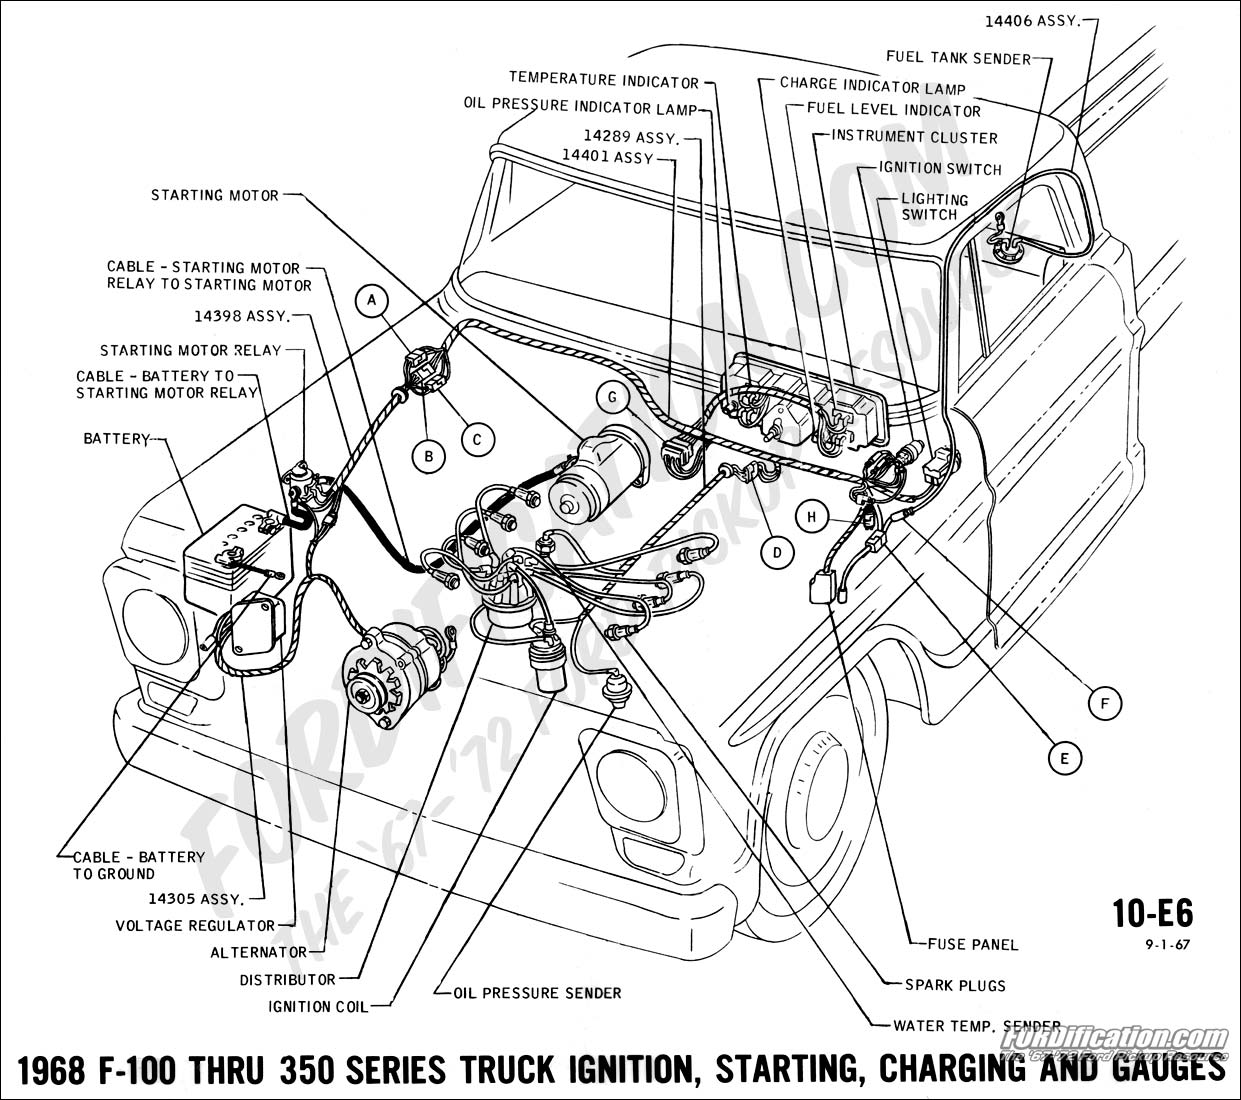 Ford F350 Trailer Wiring Diagram View Diagram Ford F350 Trailer Wiring